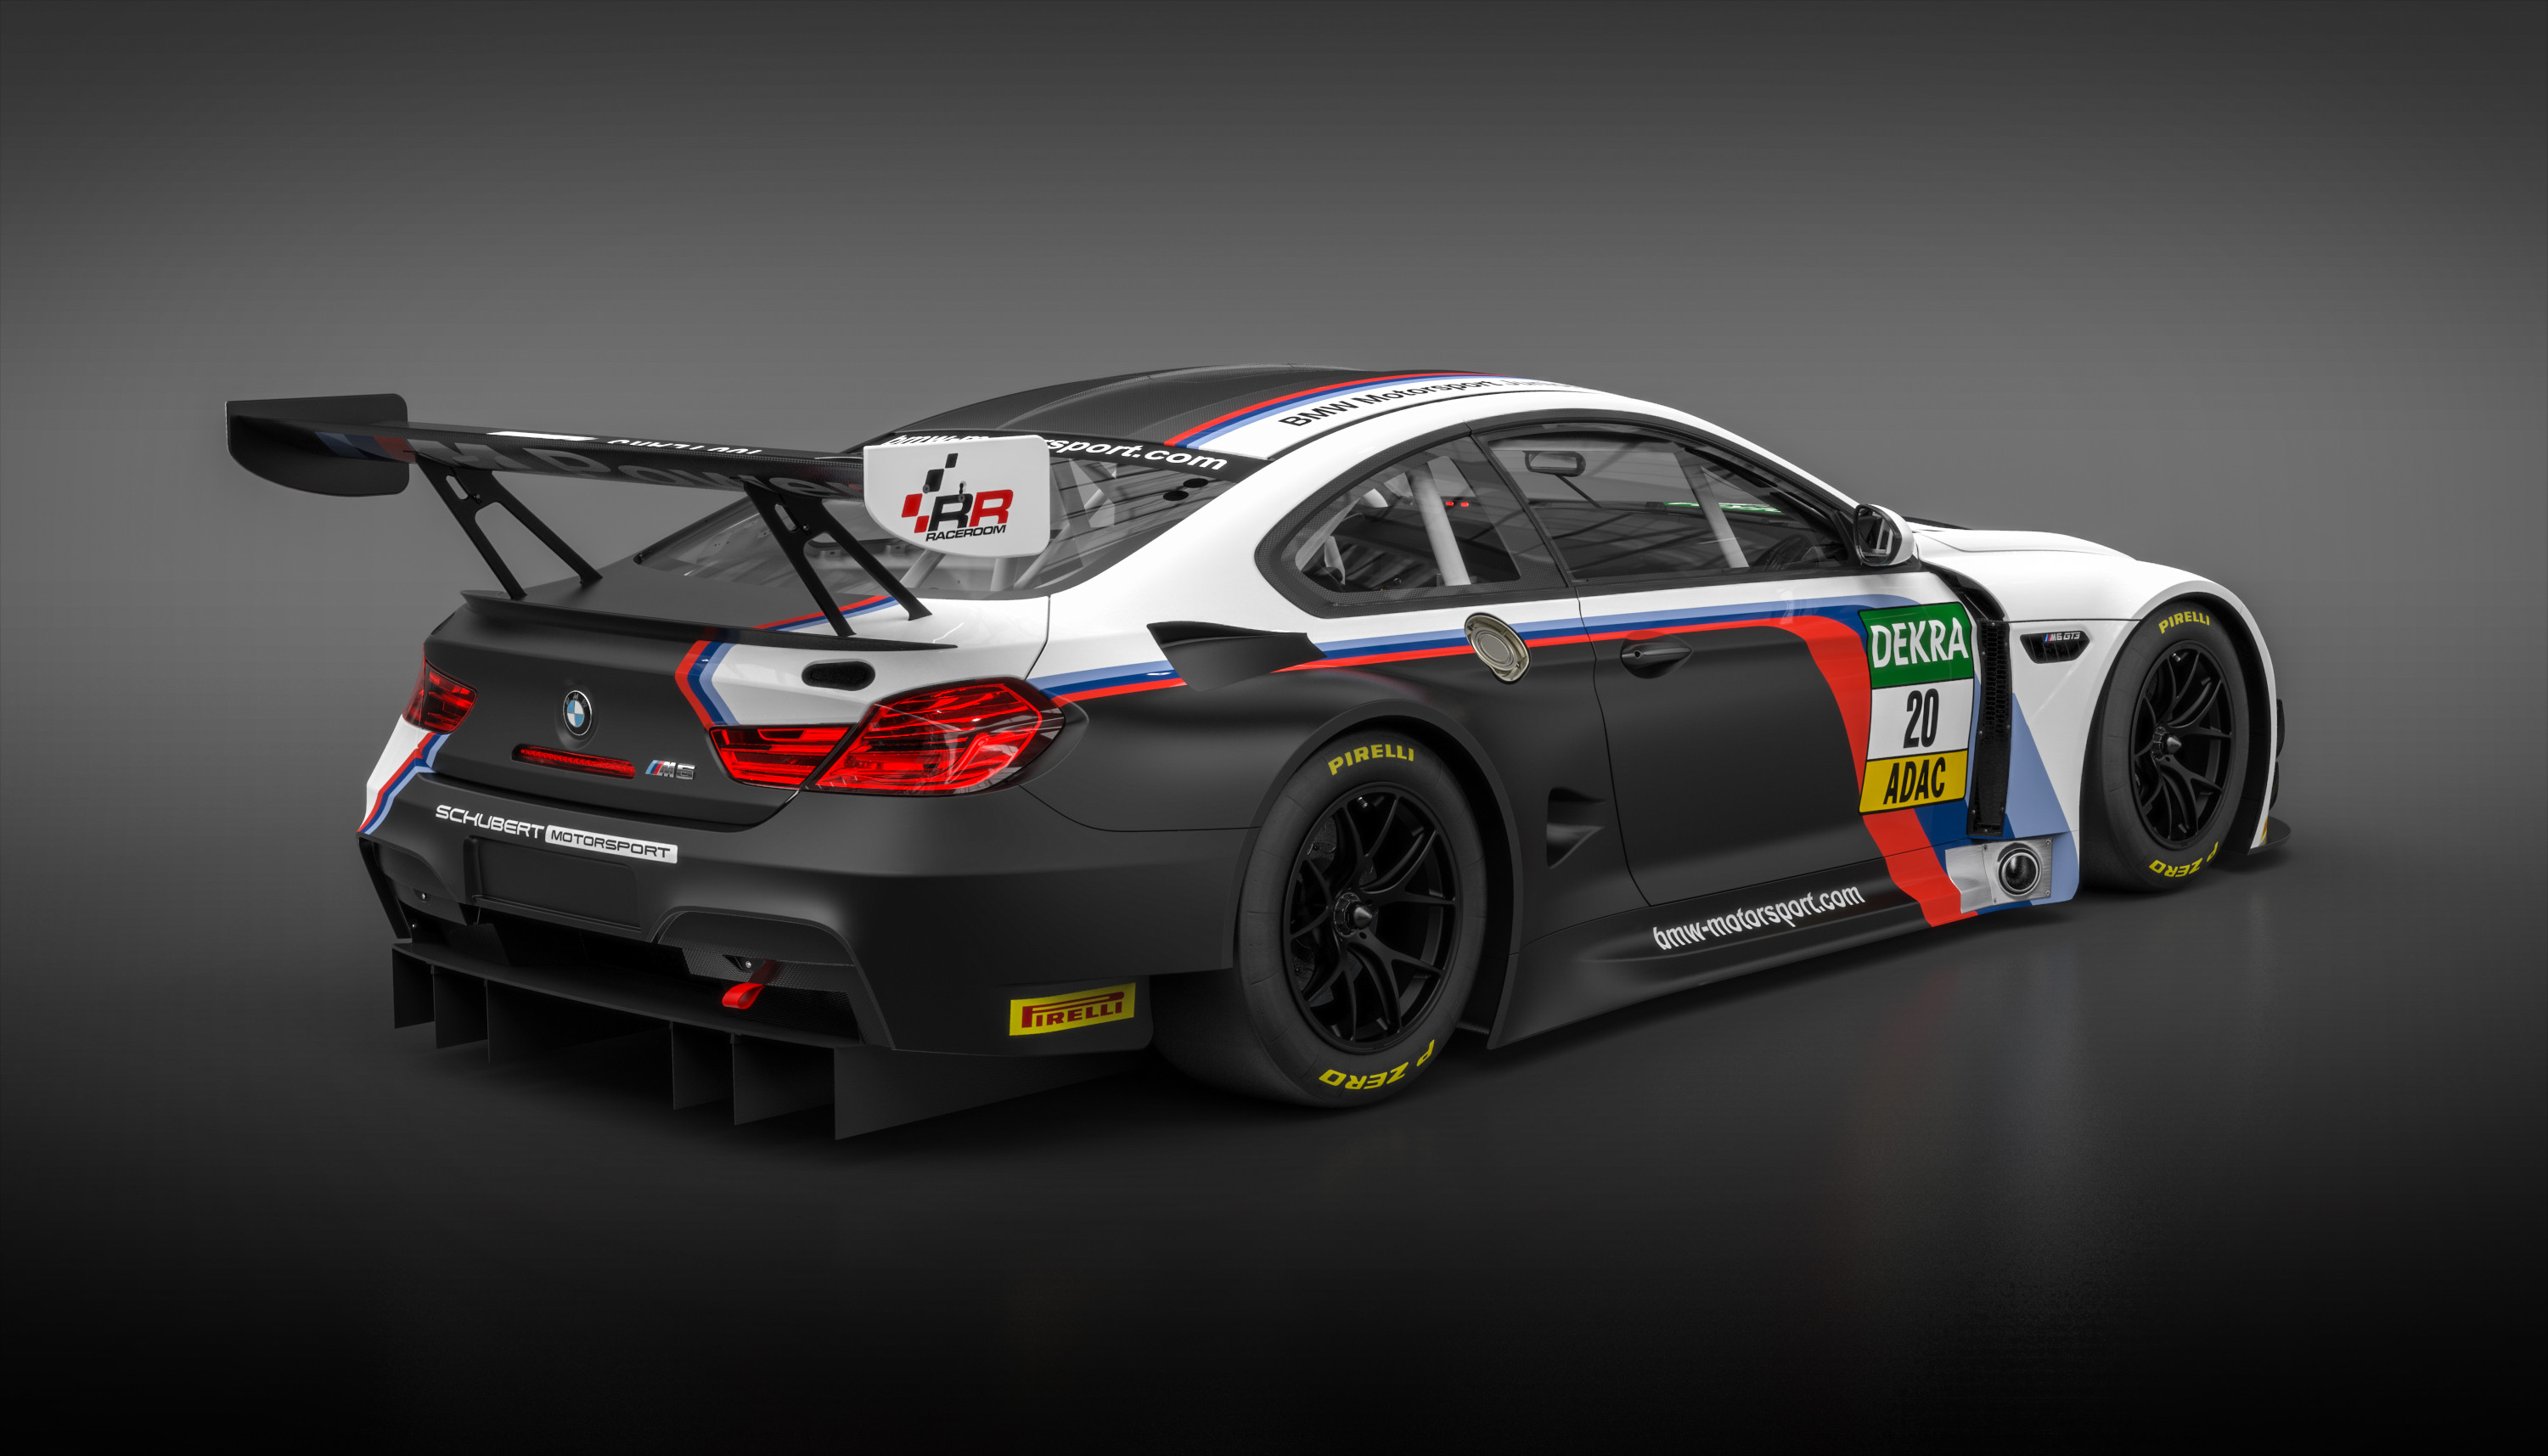 R3E BMW M6 GT3 rear shot.jpg